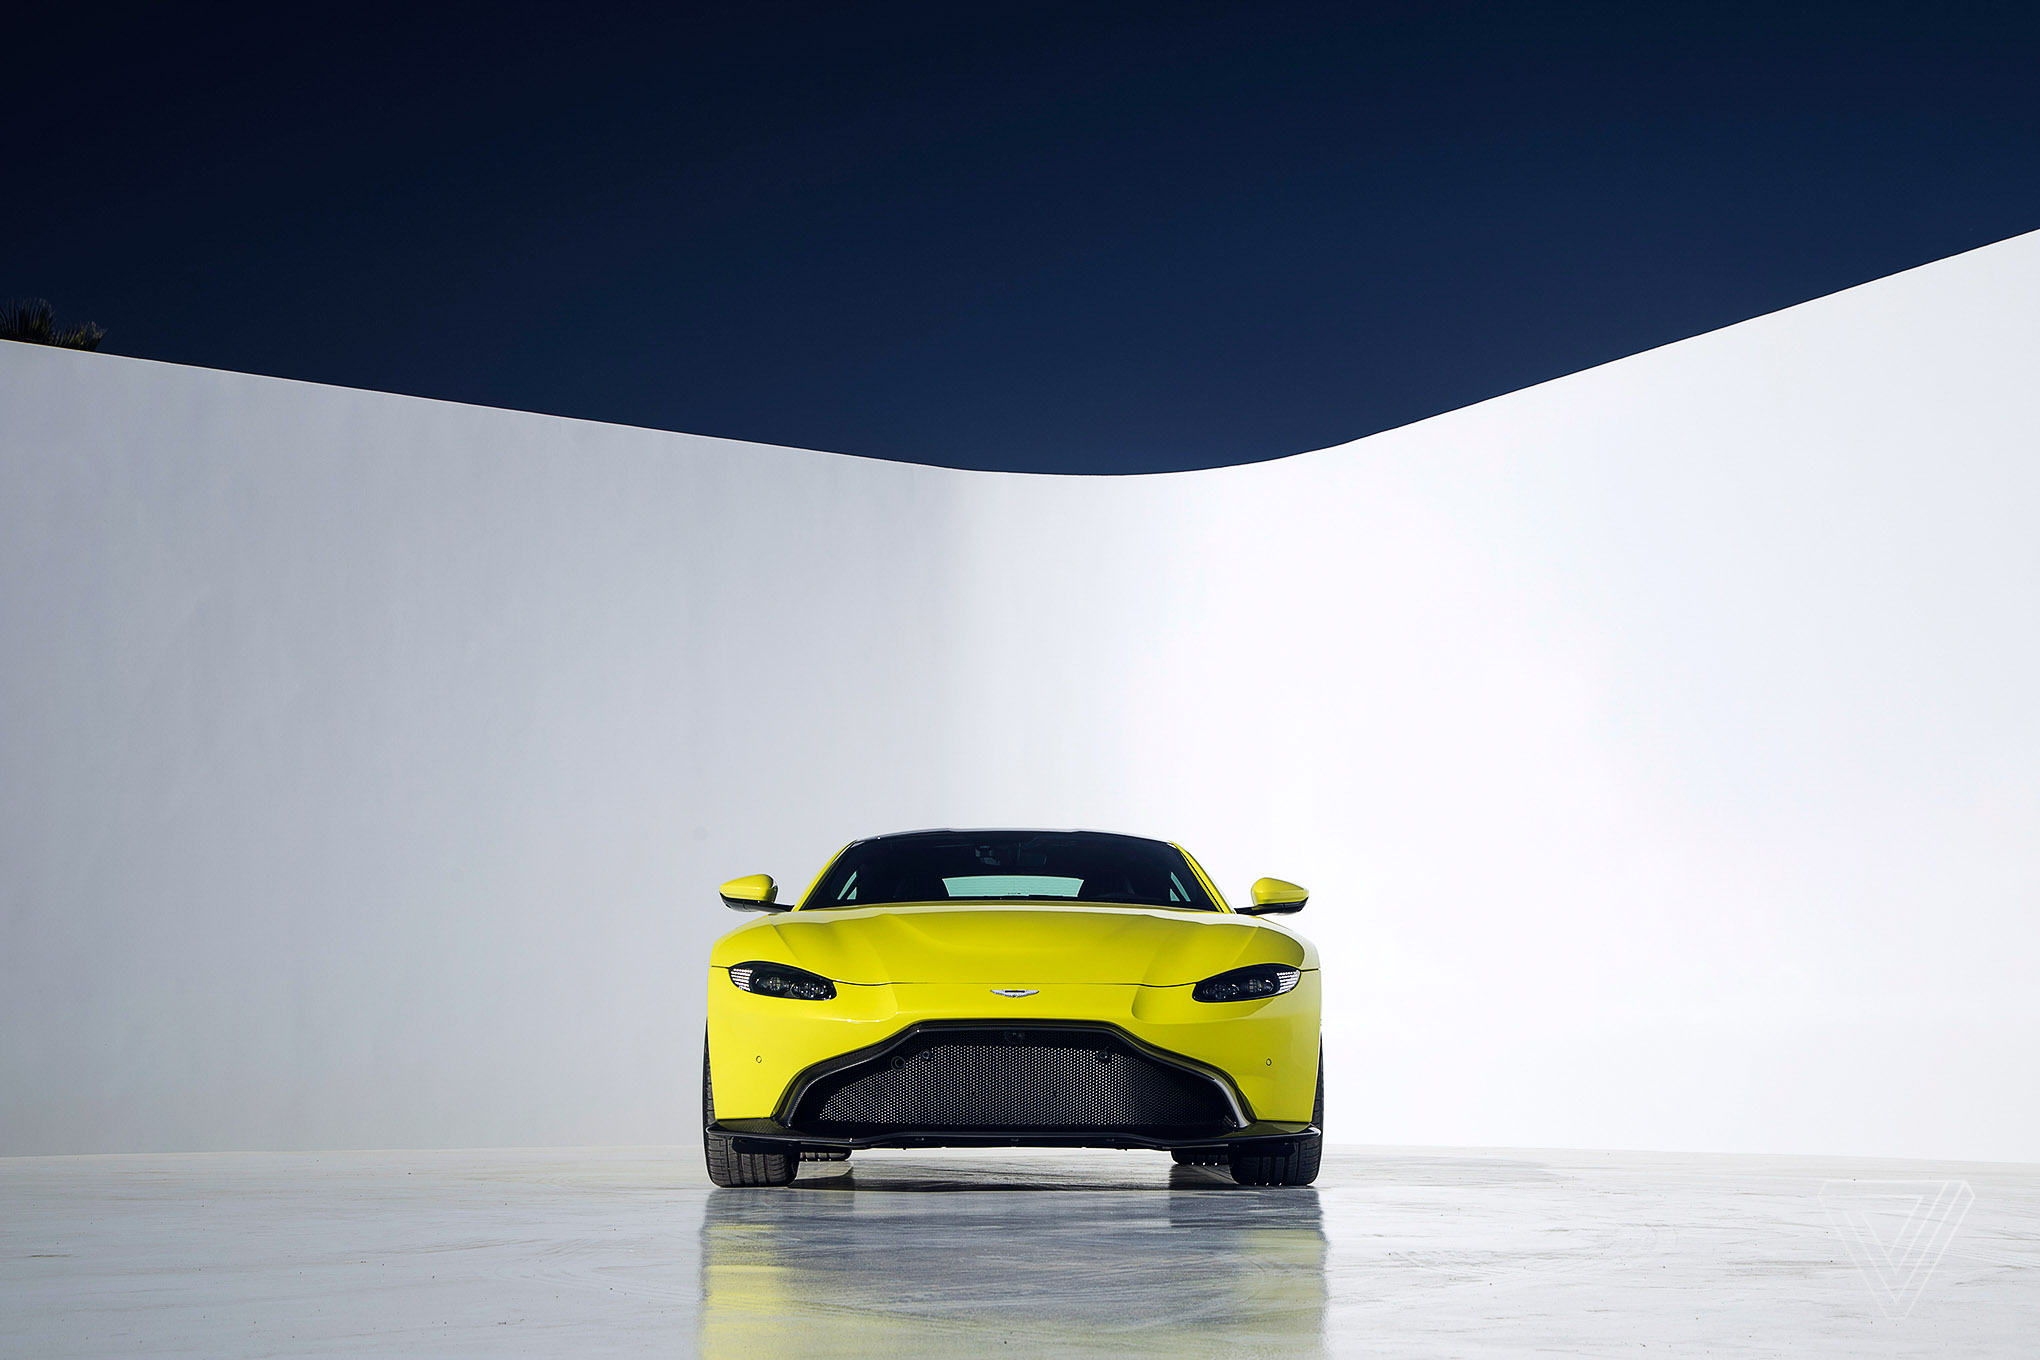 Aston Martin reveals all-new 503-horsepower 'entry level' Vantage